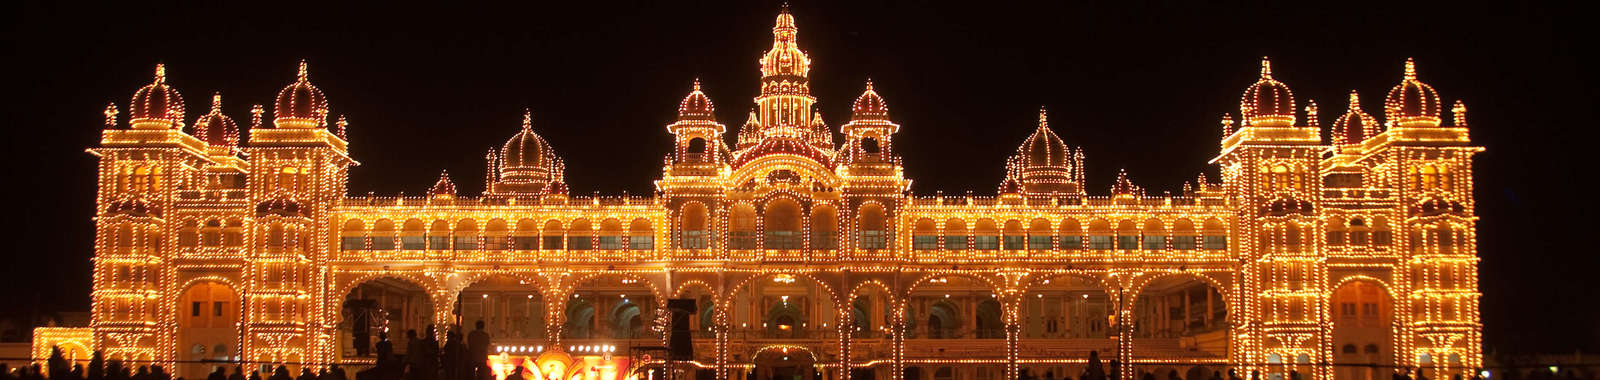 Visit the palace at Mysore by night on a tailor made holiday to Karnataka